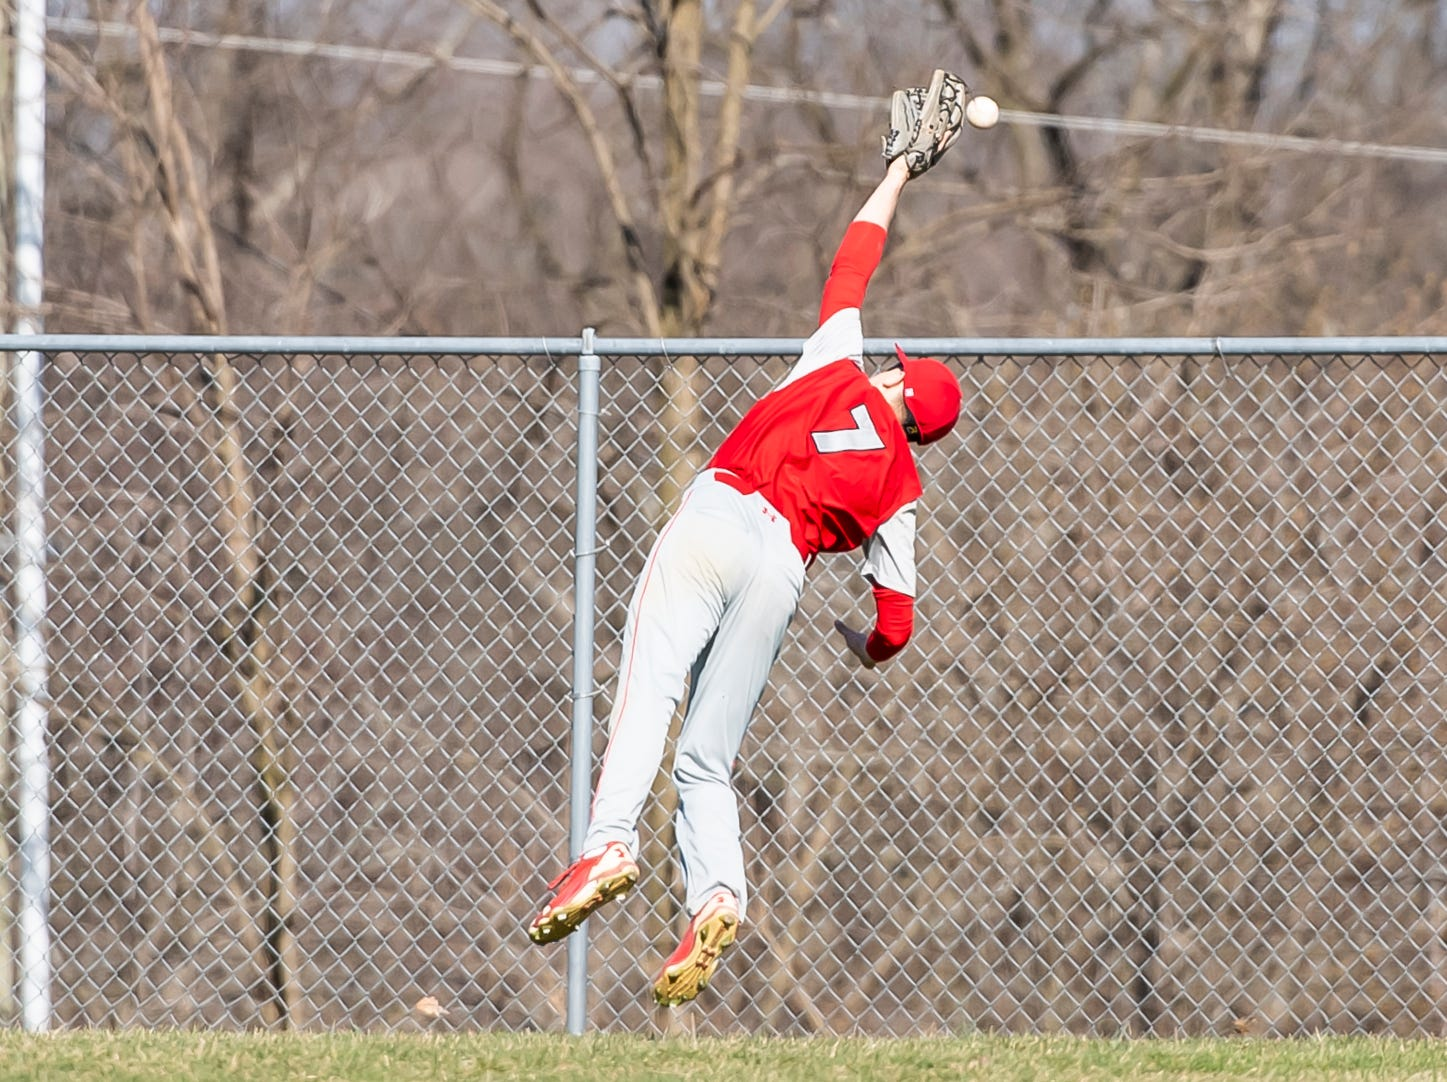 Bermudian Springs outfielder Tyler Sims comes up short on catching a fly ball during a YAIAA baseball game against West York on Wednesday, April 3, 2019. The Eagles fell 14-11.